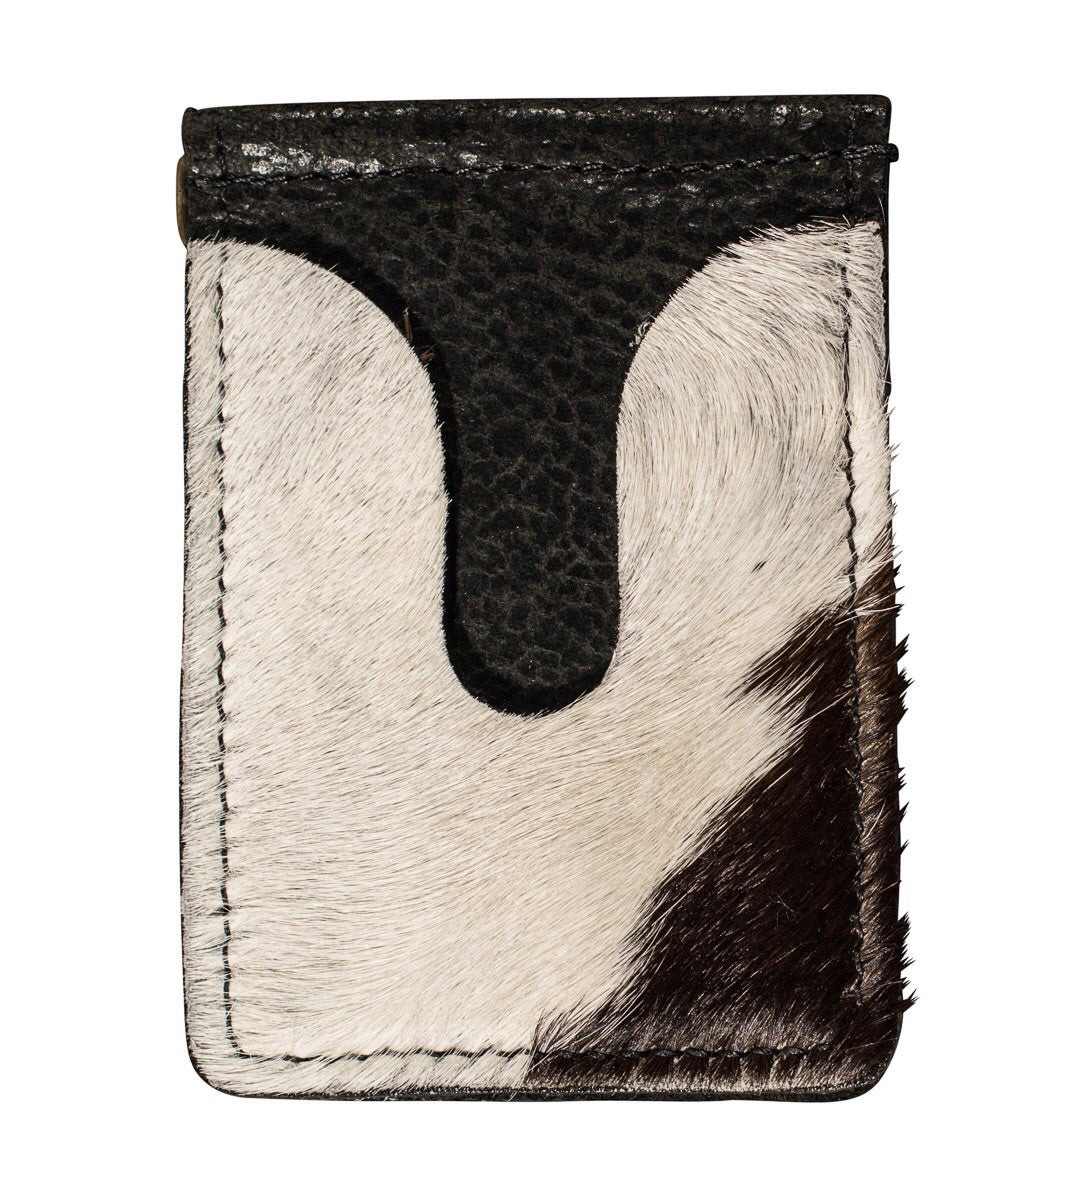 Black and white calf hair money clip